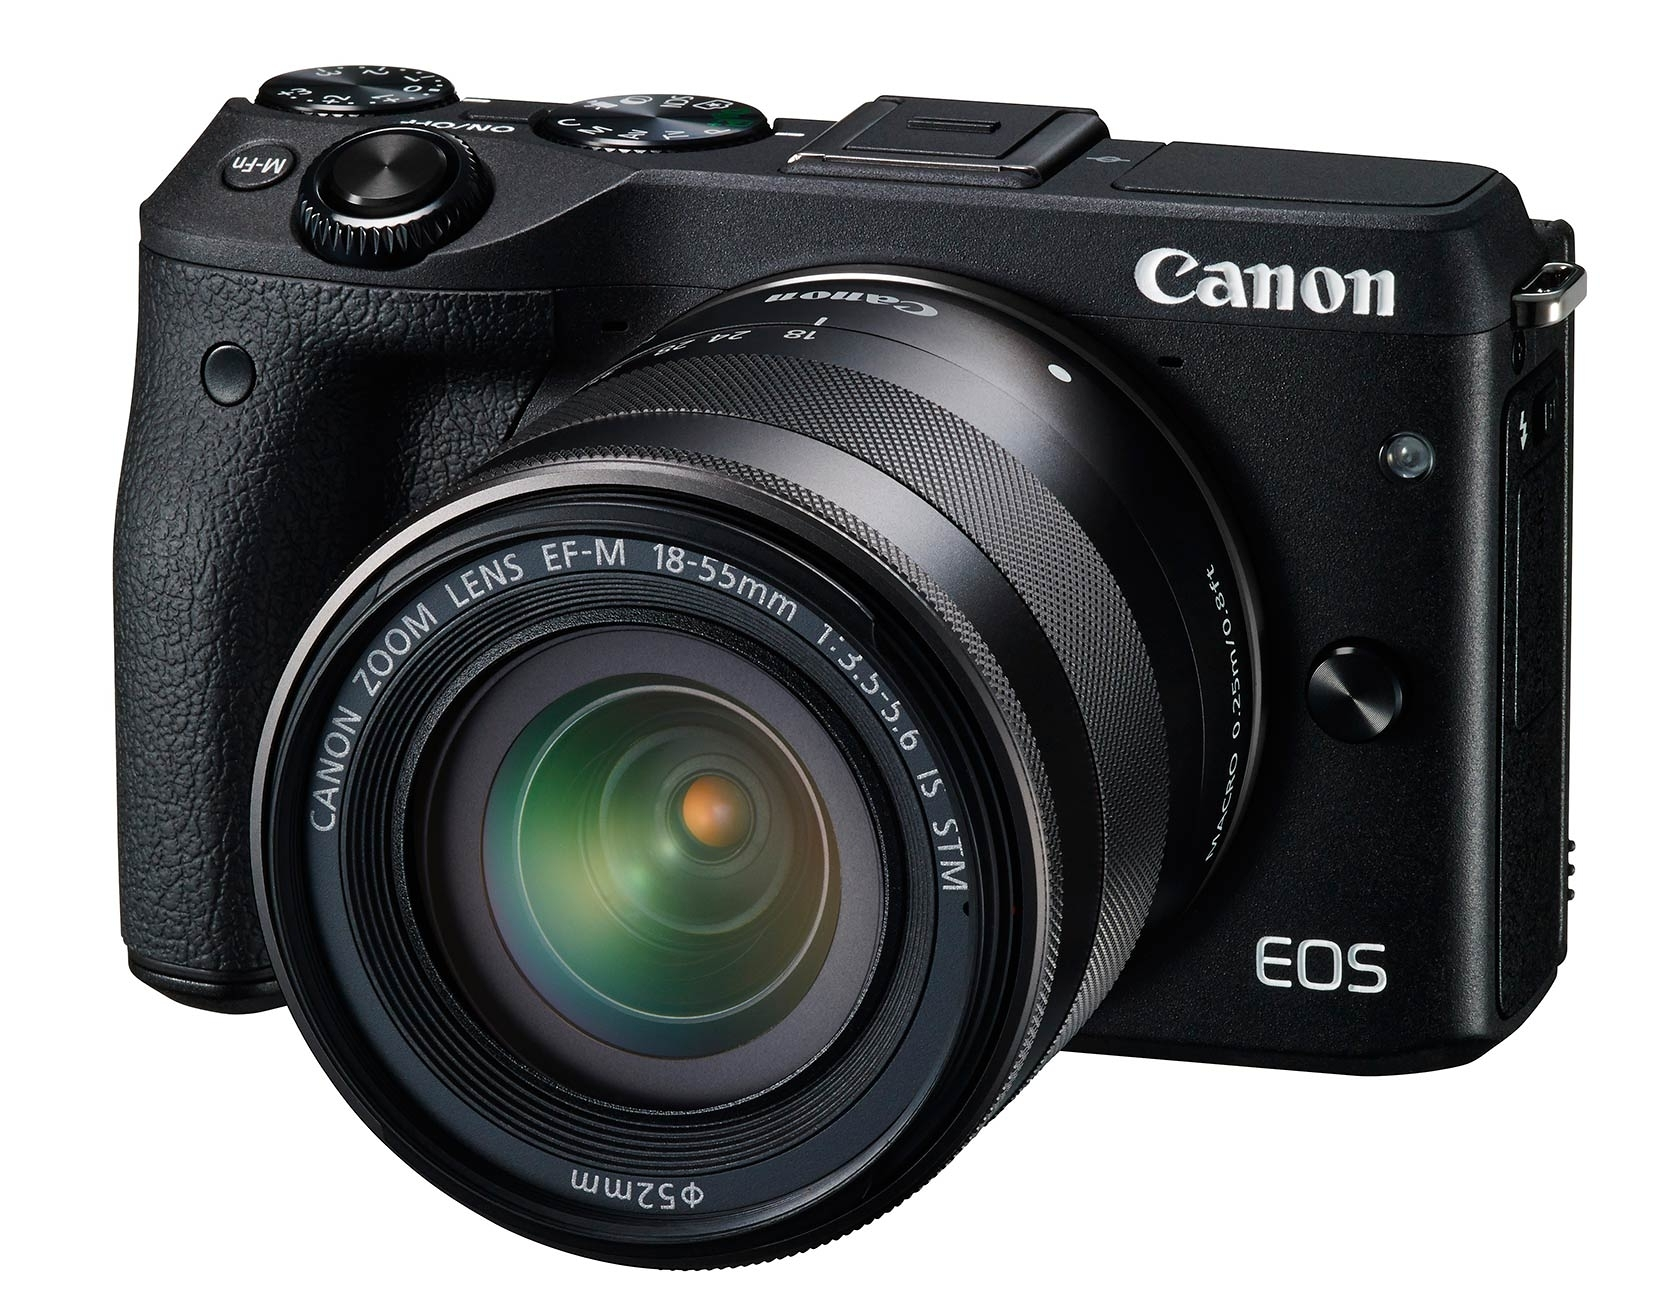 The Canon EOS M3 - front